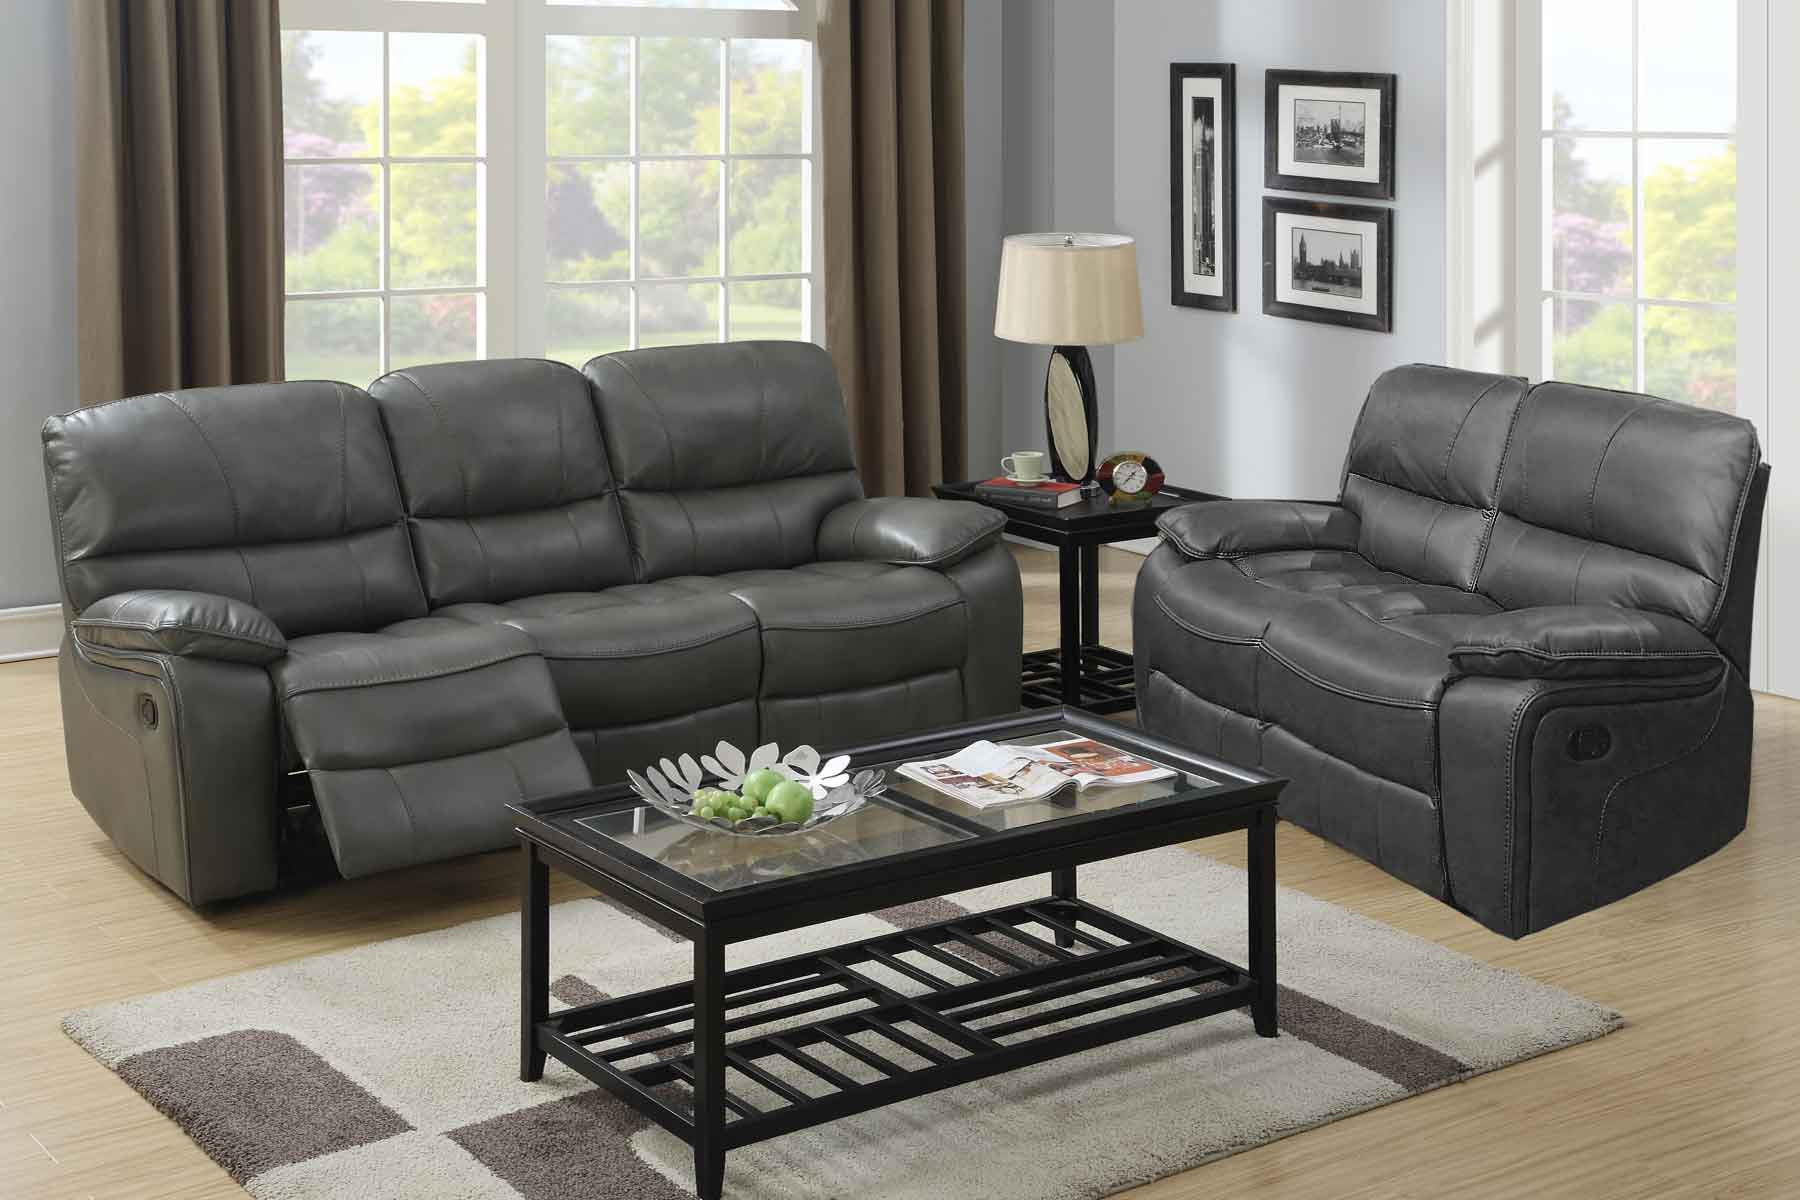 2 Pc Houston Grey Reclining Sofa Love Set within Living Room Recliner Sets